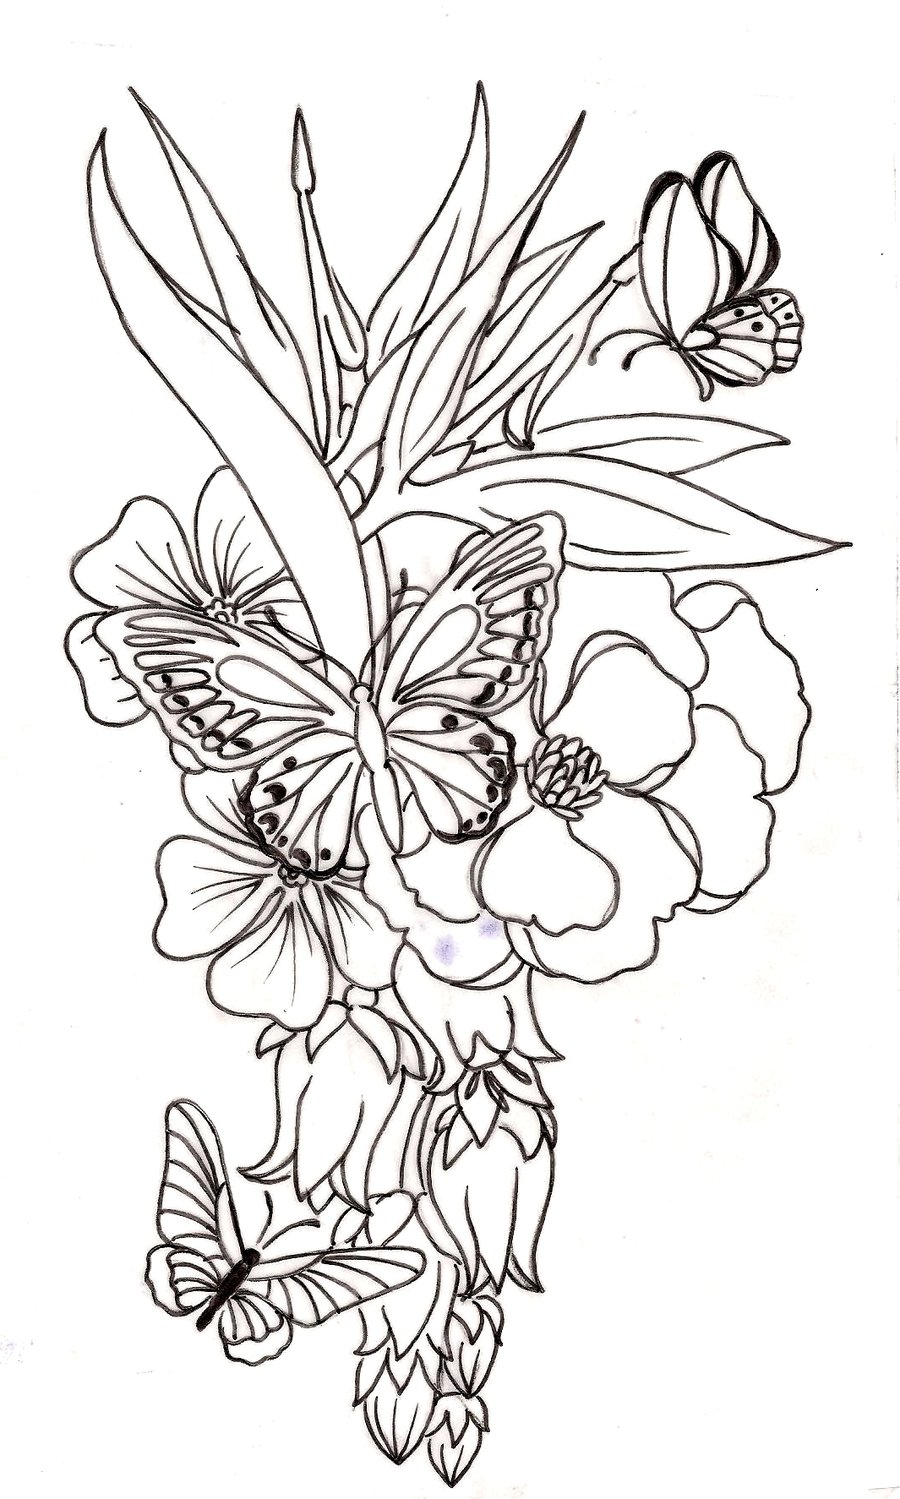 Colorful Flowers Drawing At Getdrawings Free For Personal Use